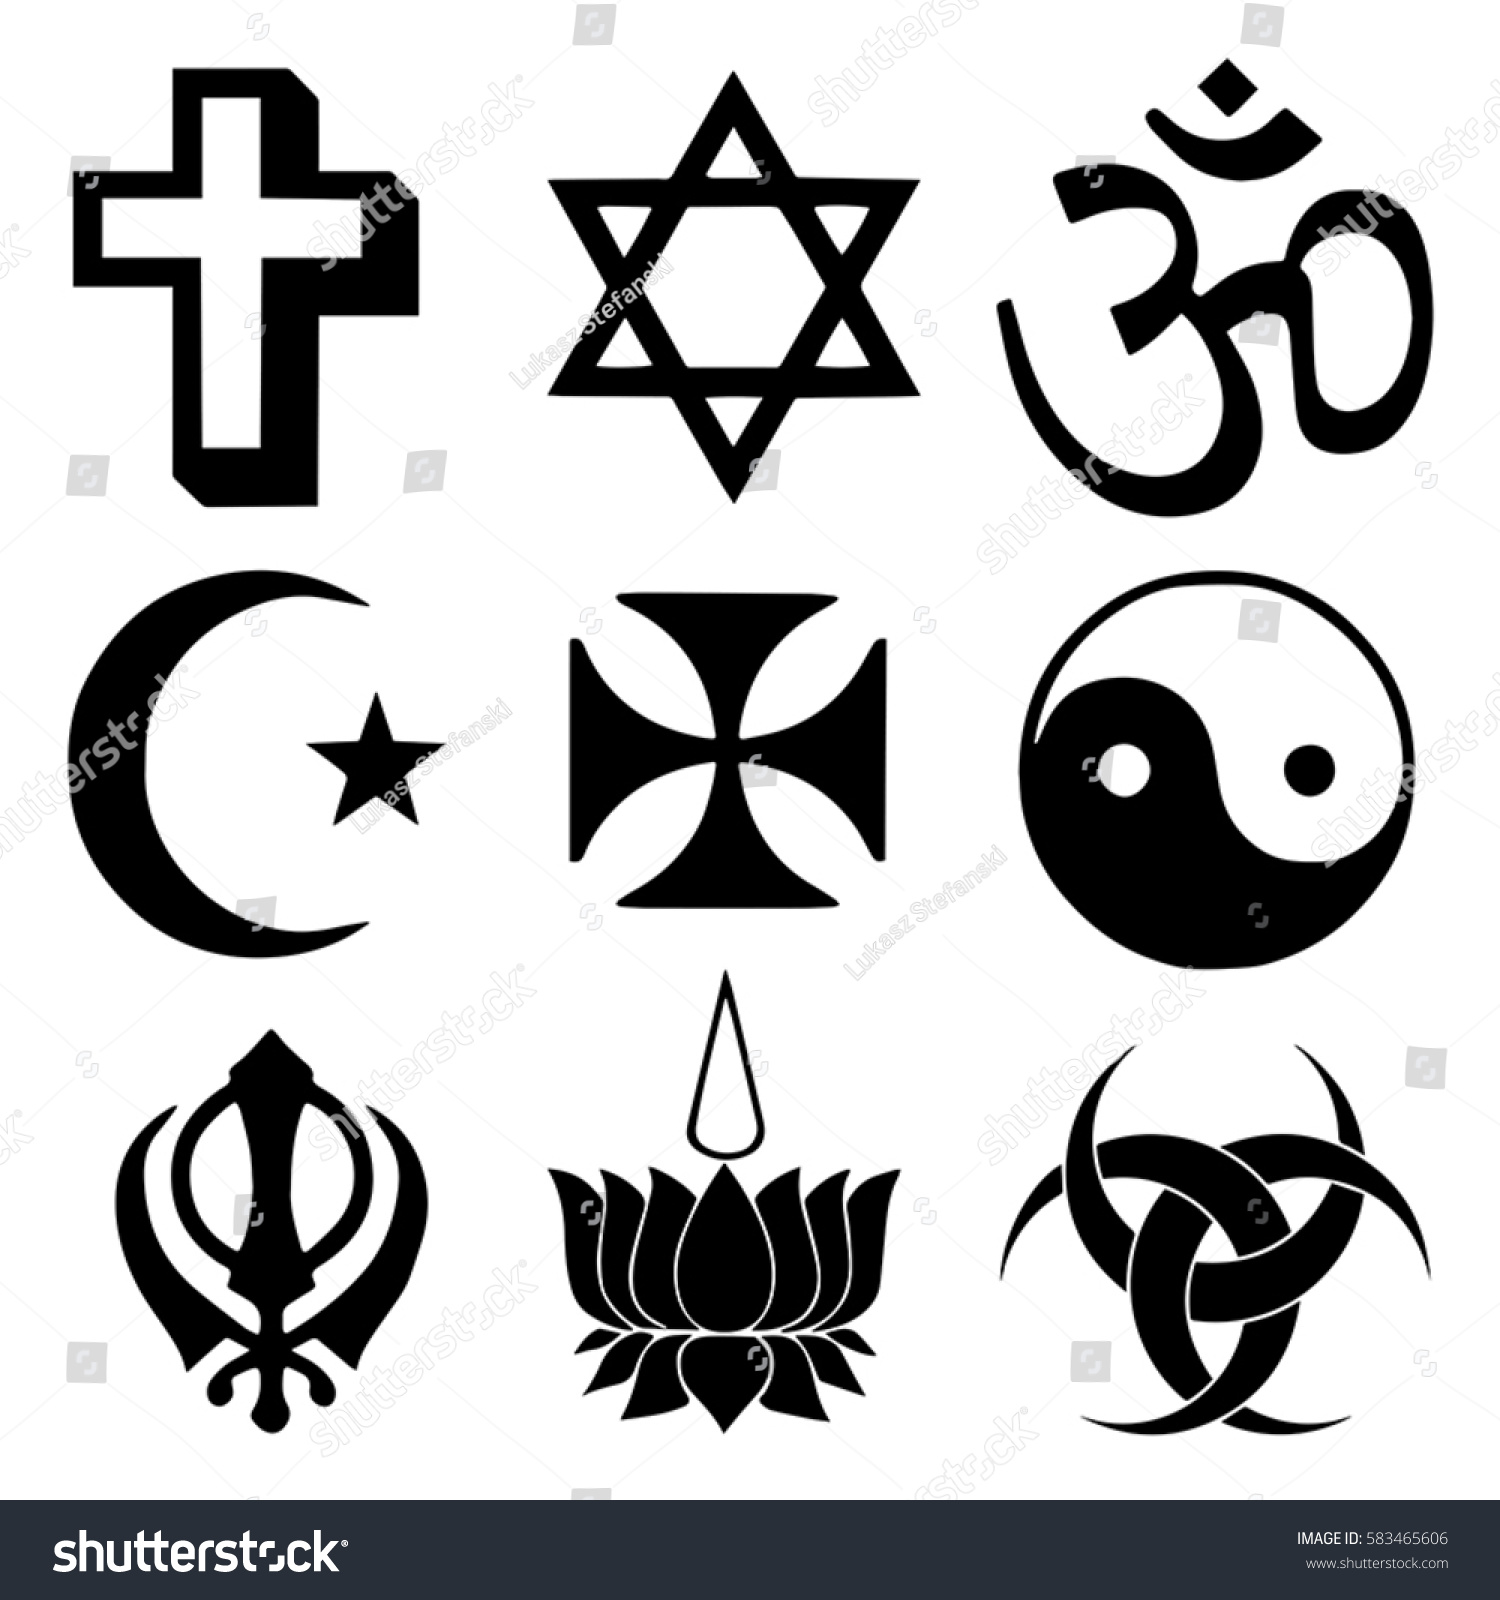 Religious Symbols Top Organized Faiths World Stock Vector Royalty